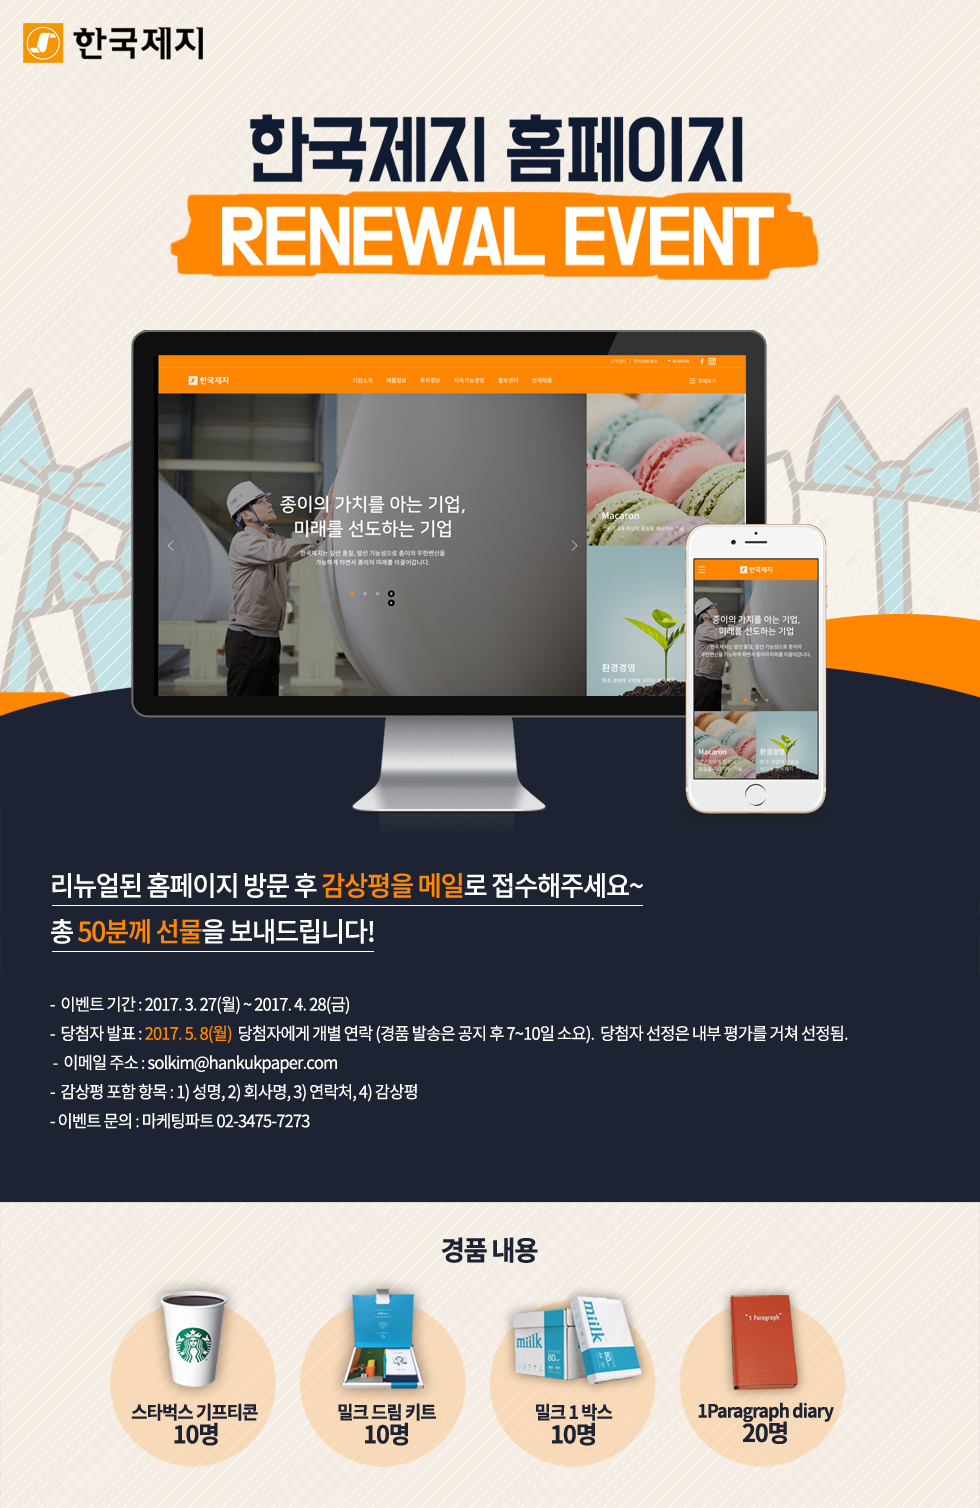 Renewal open event of  Hankuk Paper's homepage